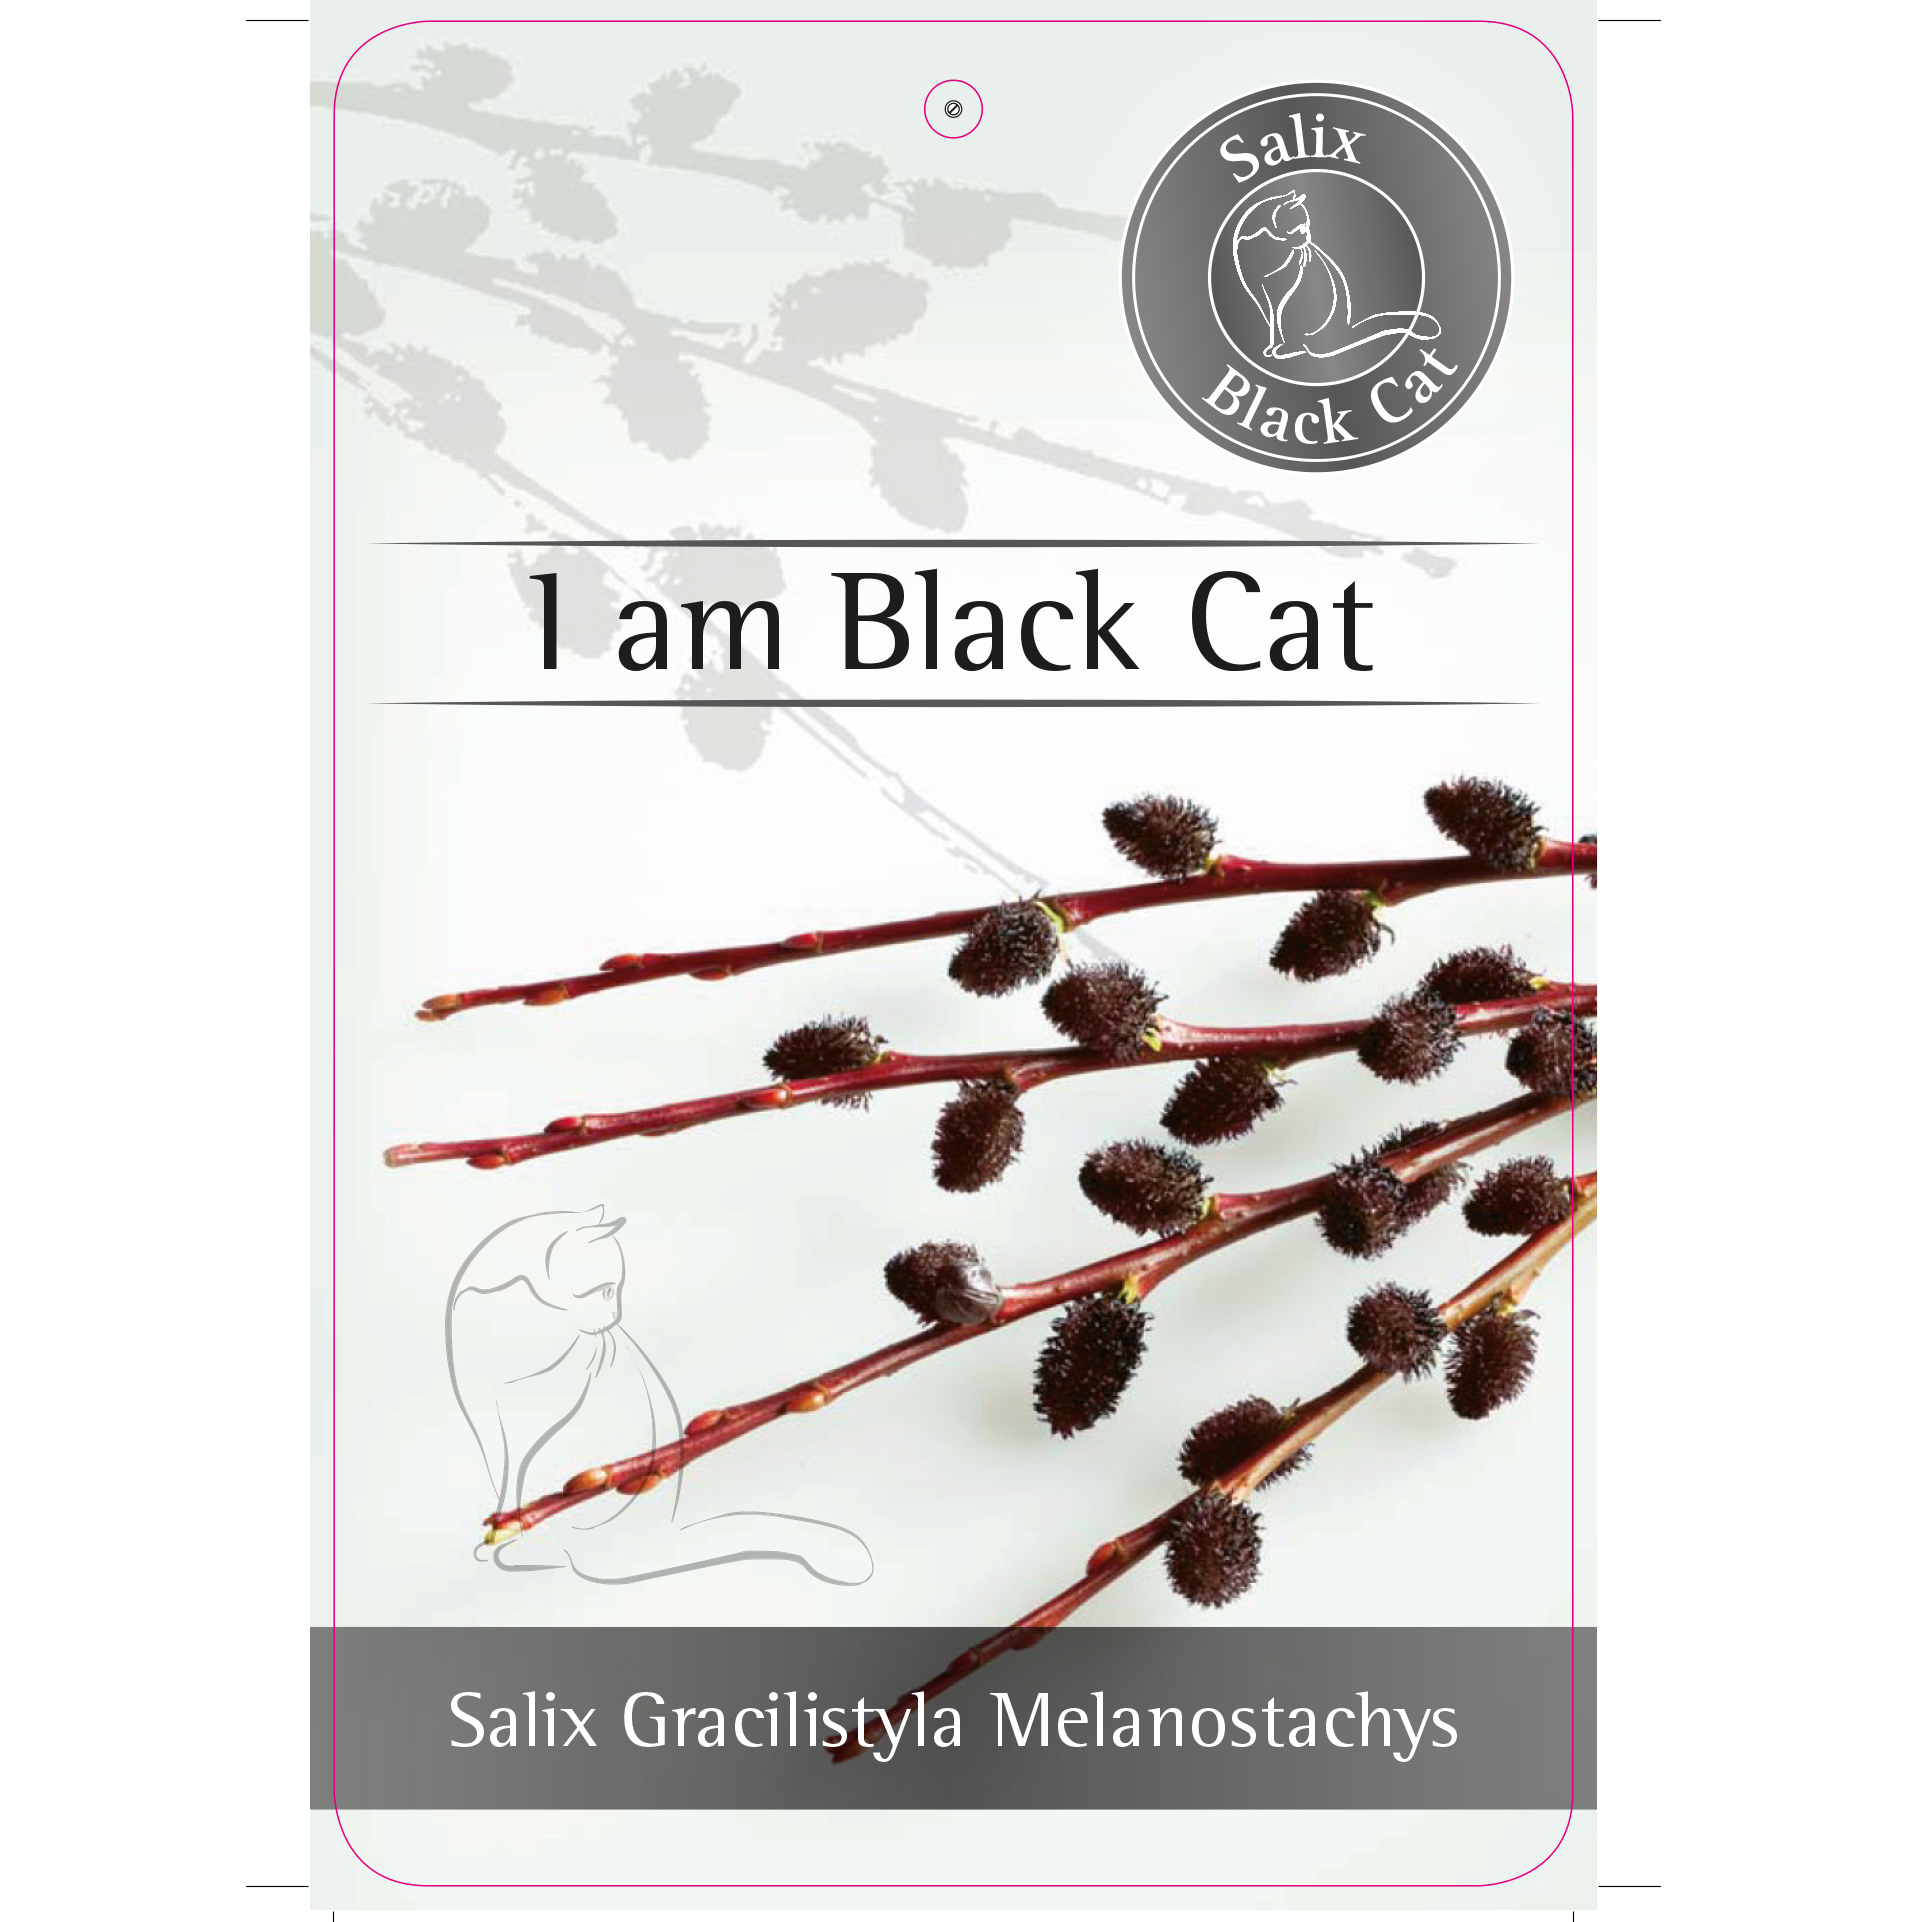 'I am Black Cat'